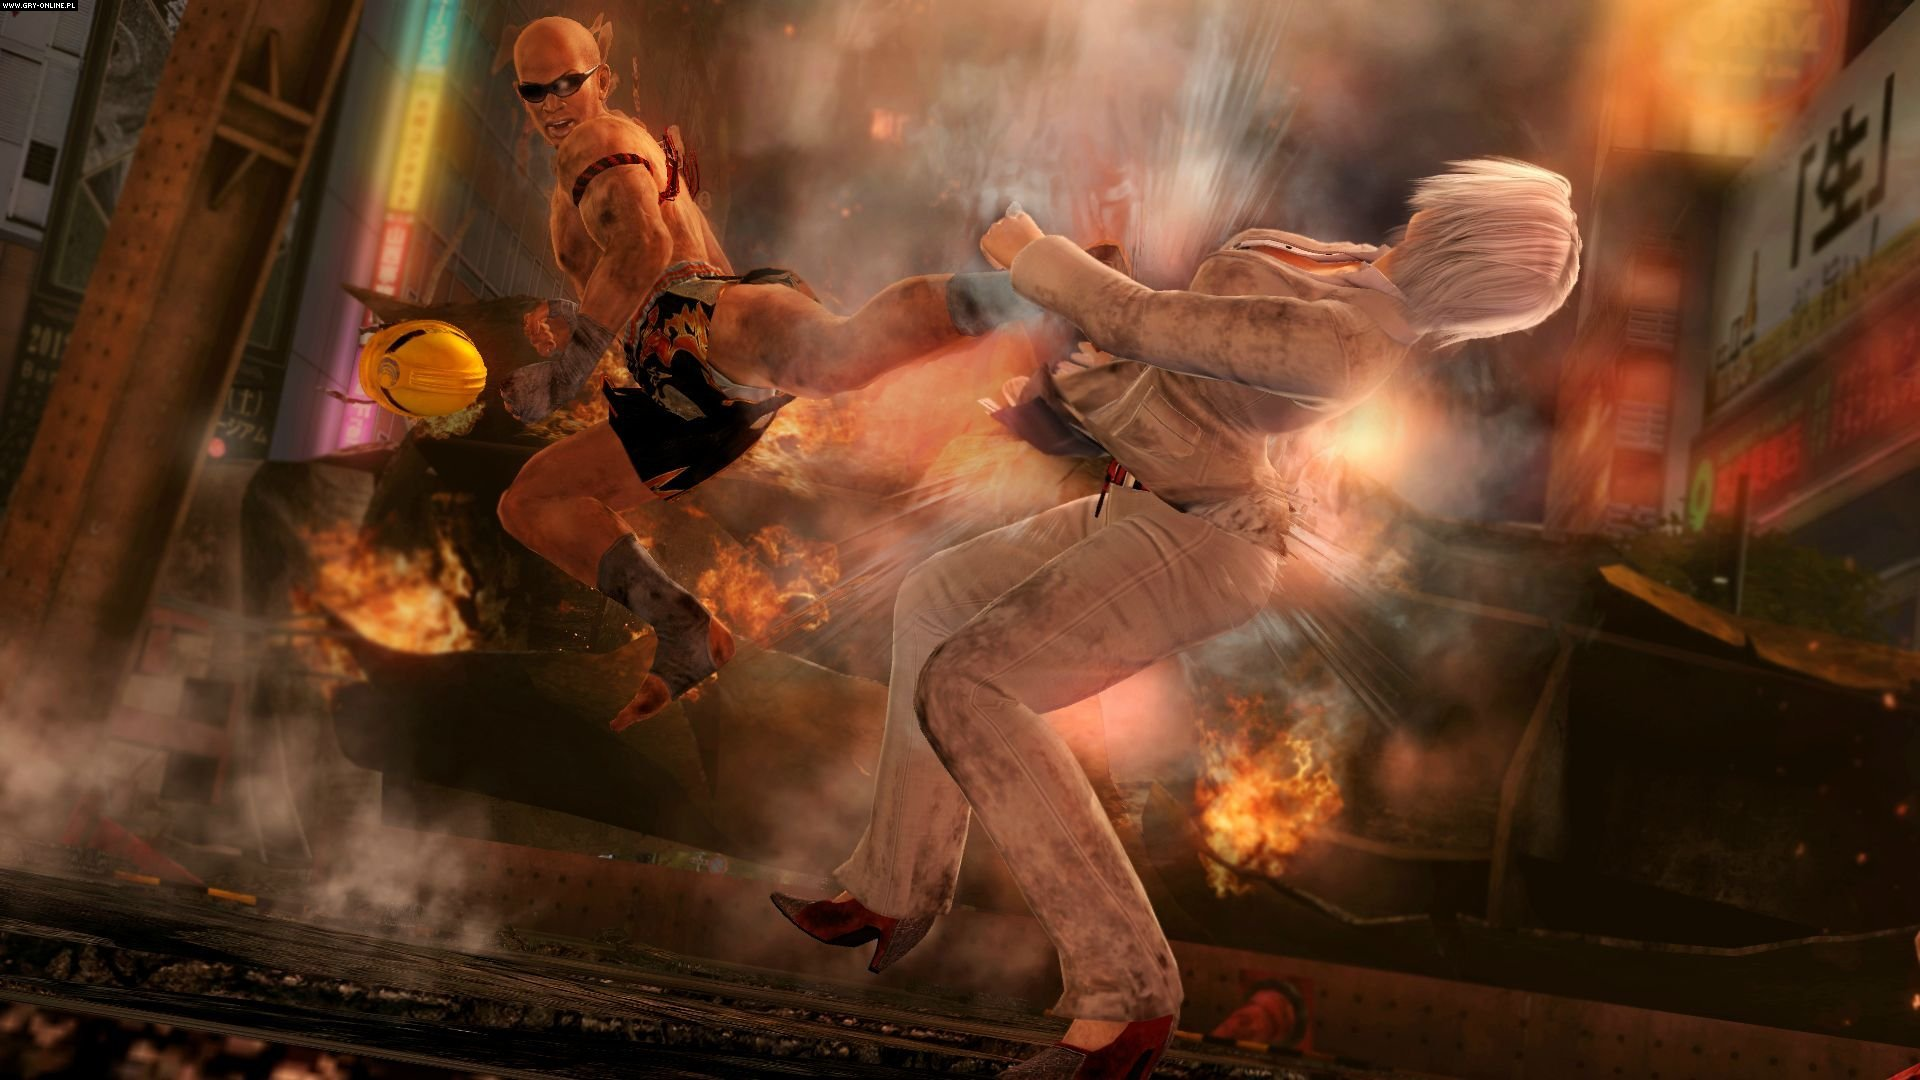 Dead or Alive 5 X360, PS3 Gry Screen 59/92, Team Ninja, Koei Tecmo